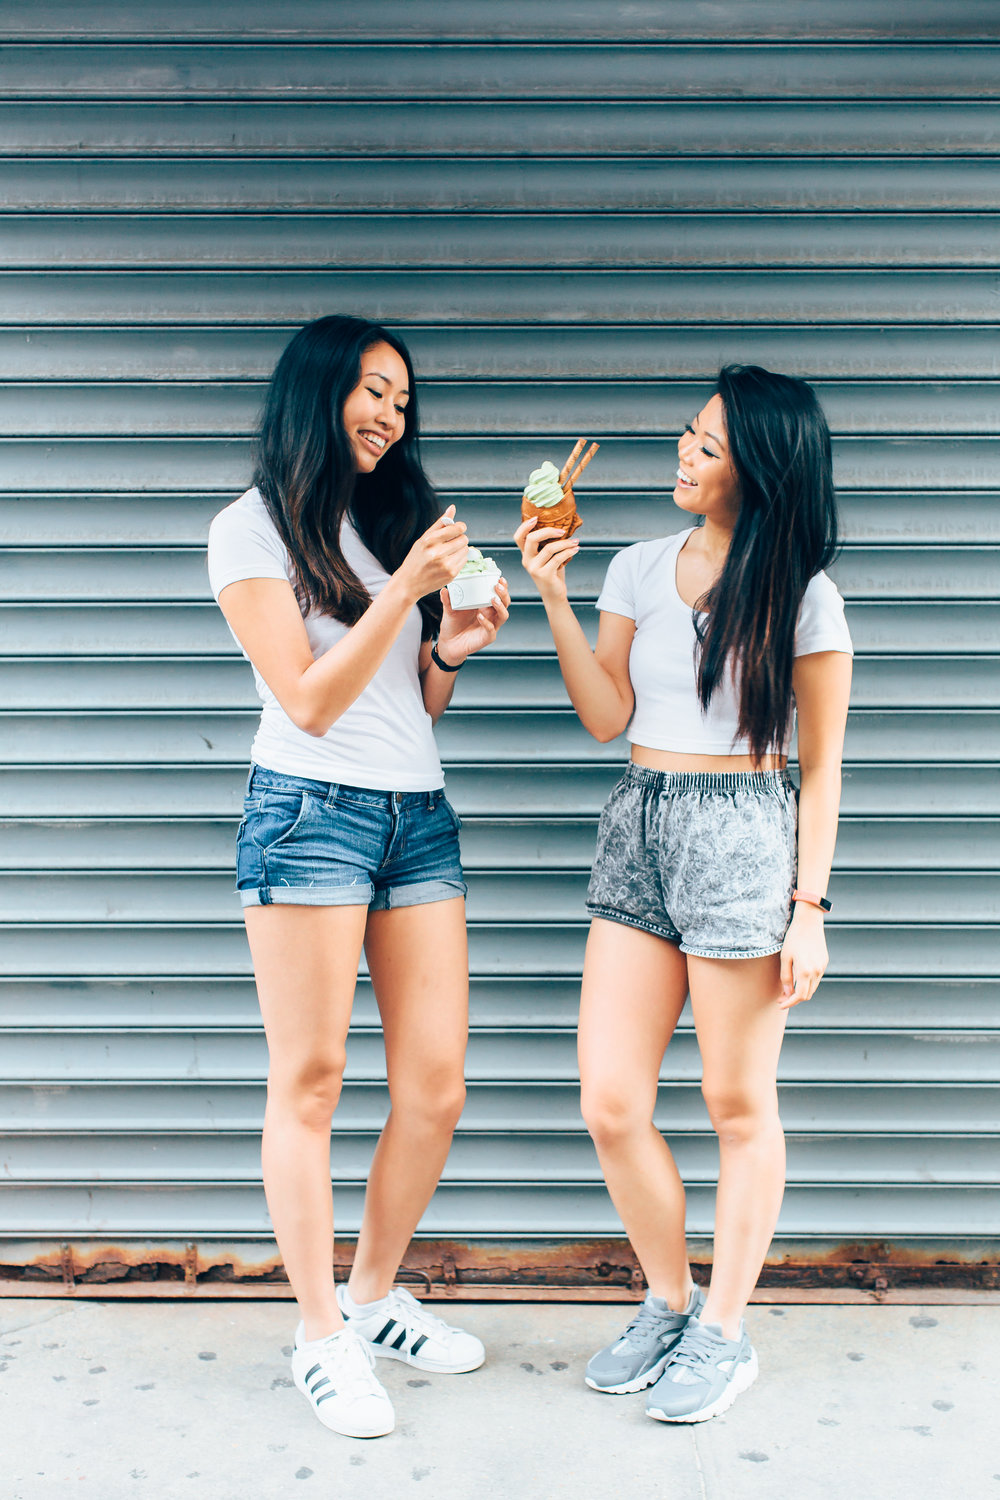 Karen (left) and Elena (right) trying Taiyaki NYC for the very first time.